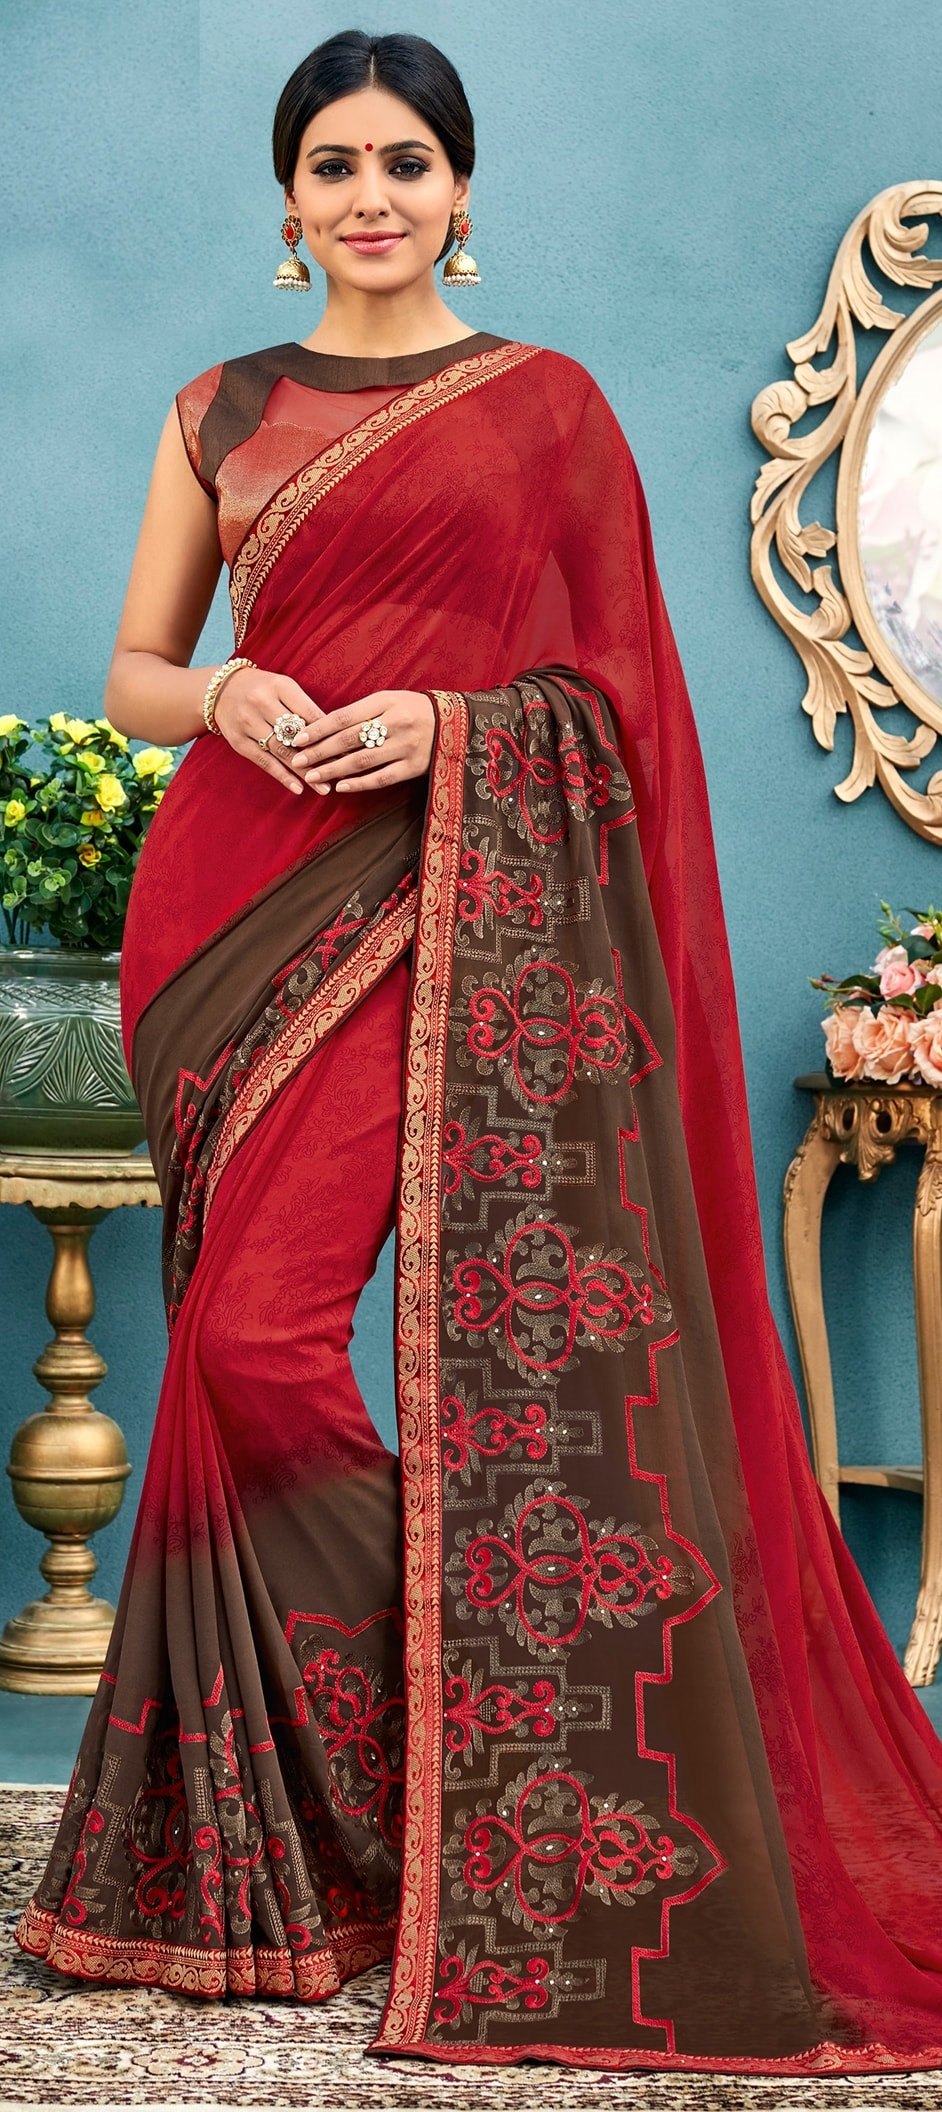 774126: Red and Maroon color family Embroidered Sarees, Party Wear ...